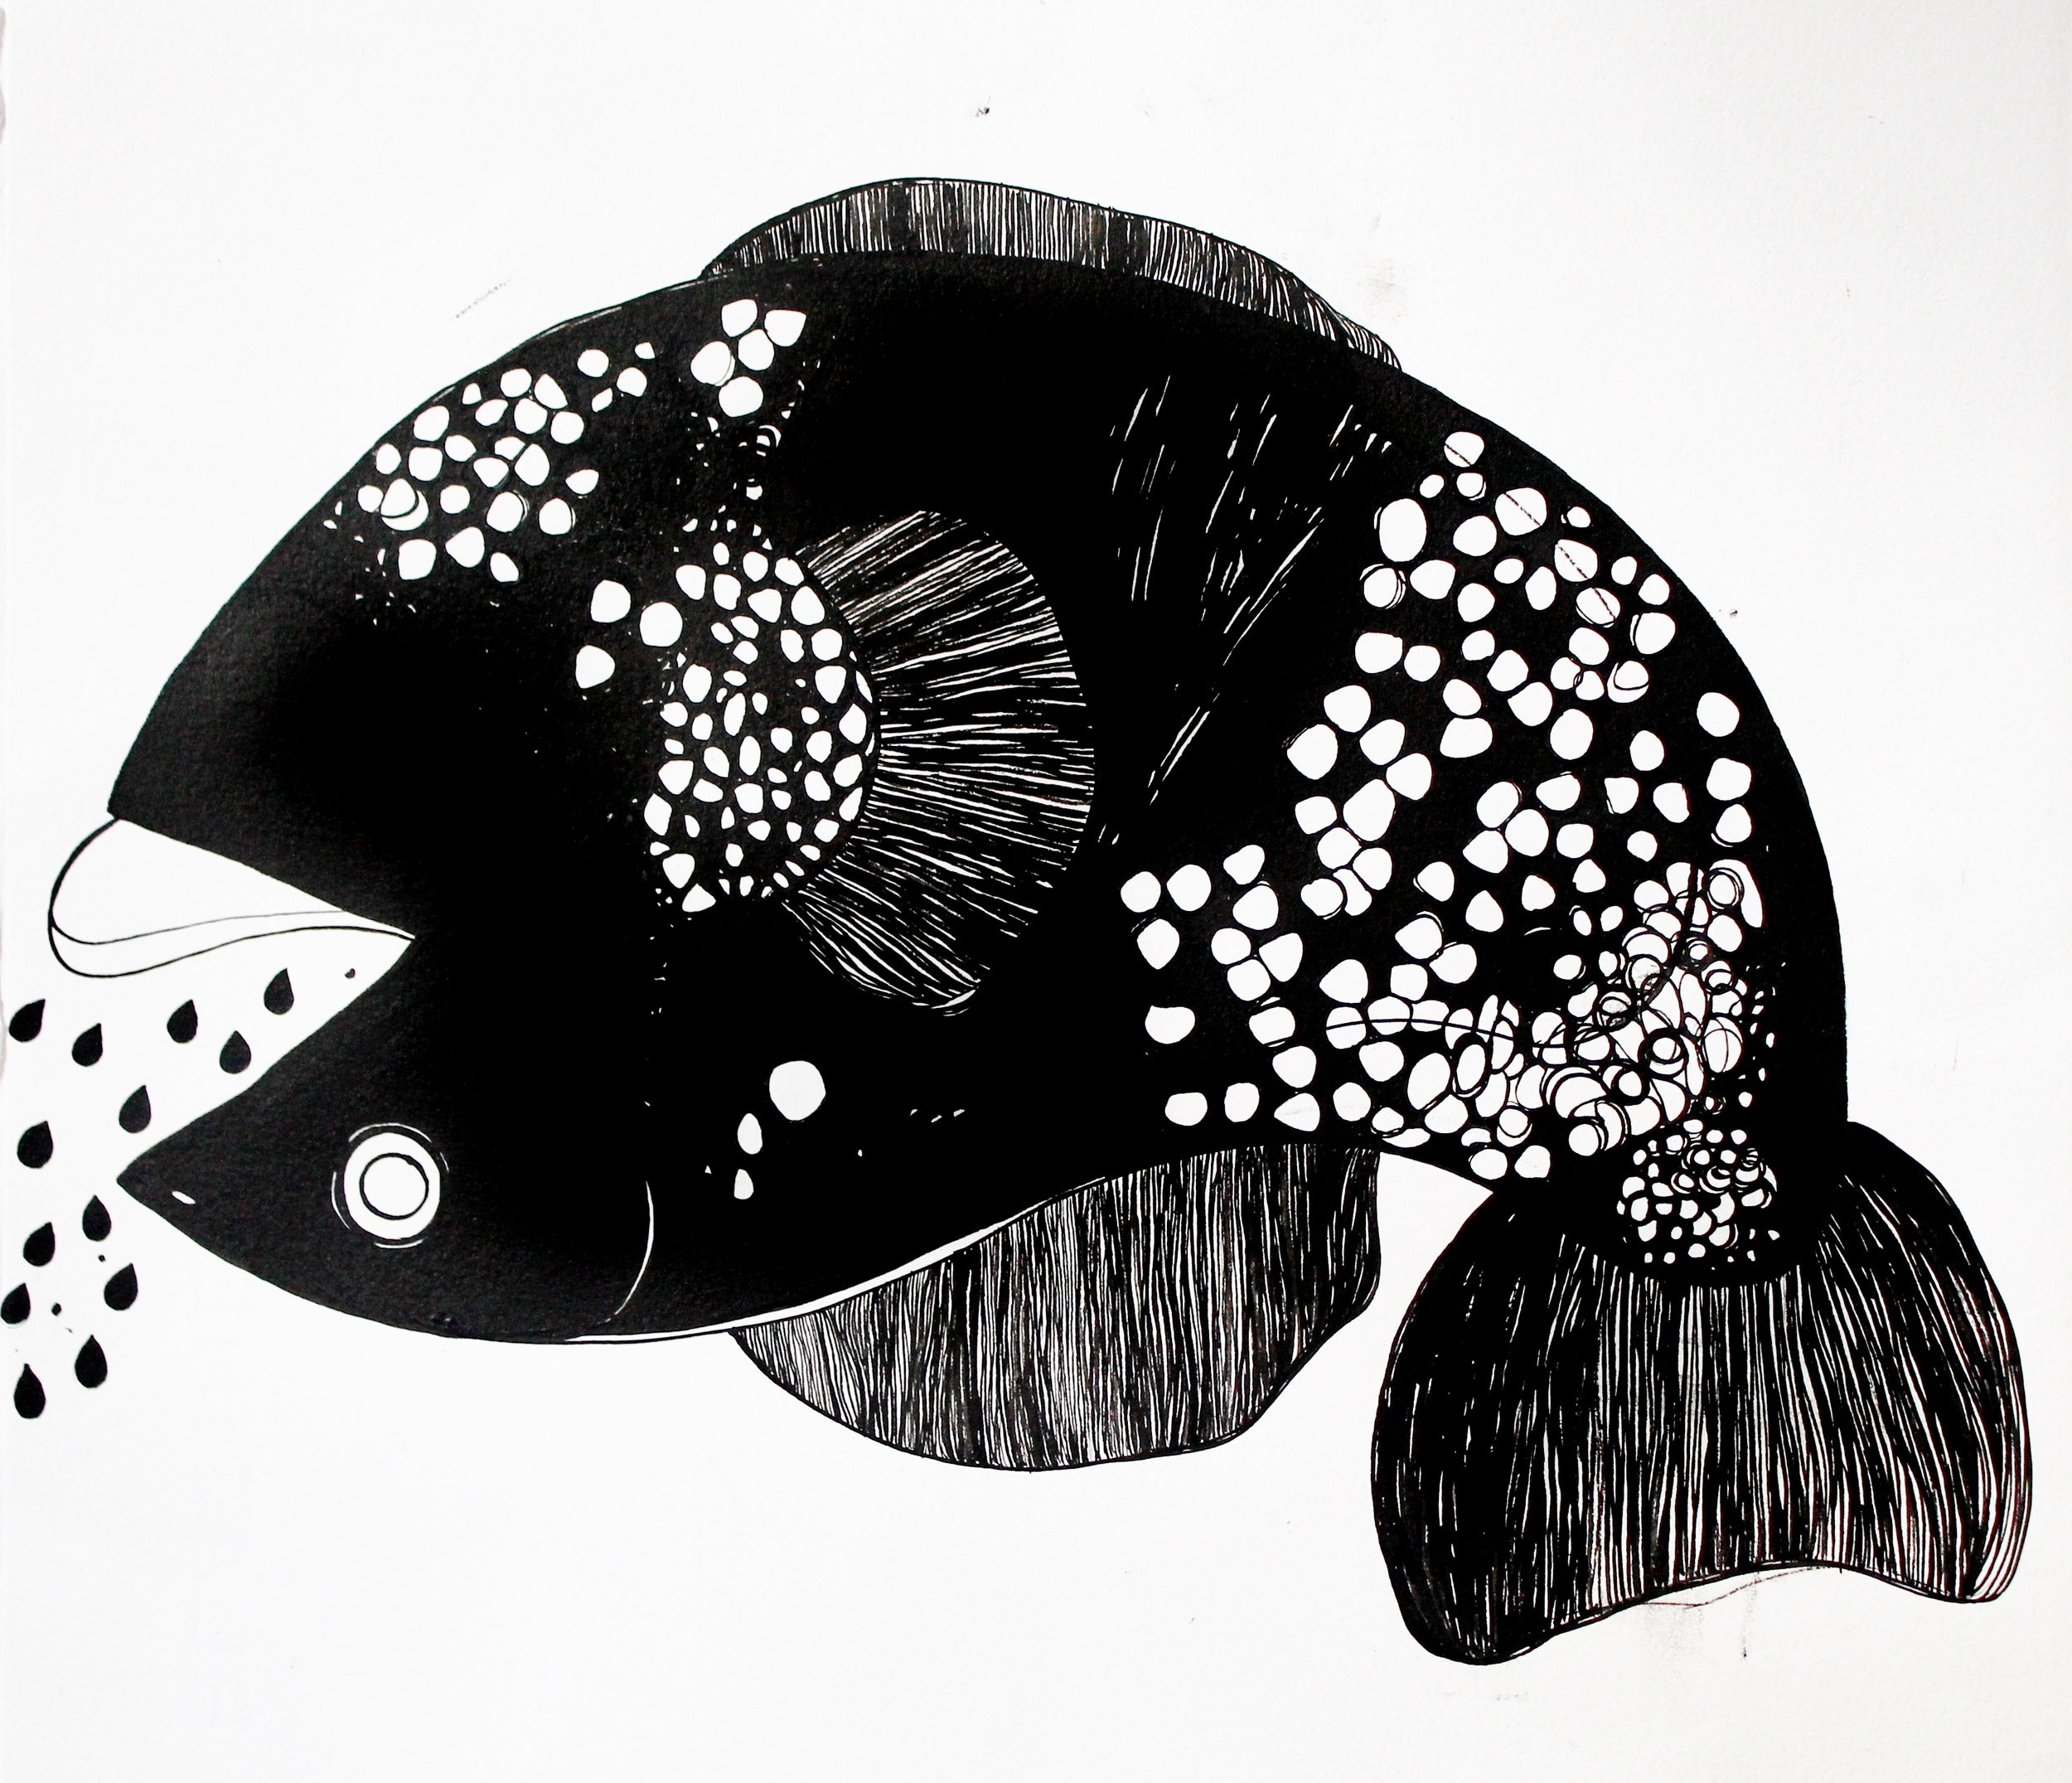 Paula Rivera, Fish, 2016 (1).JPG